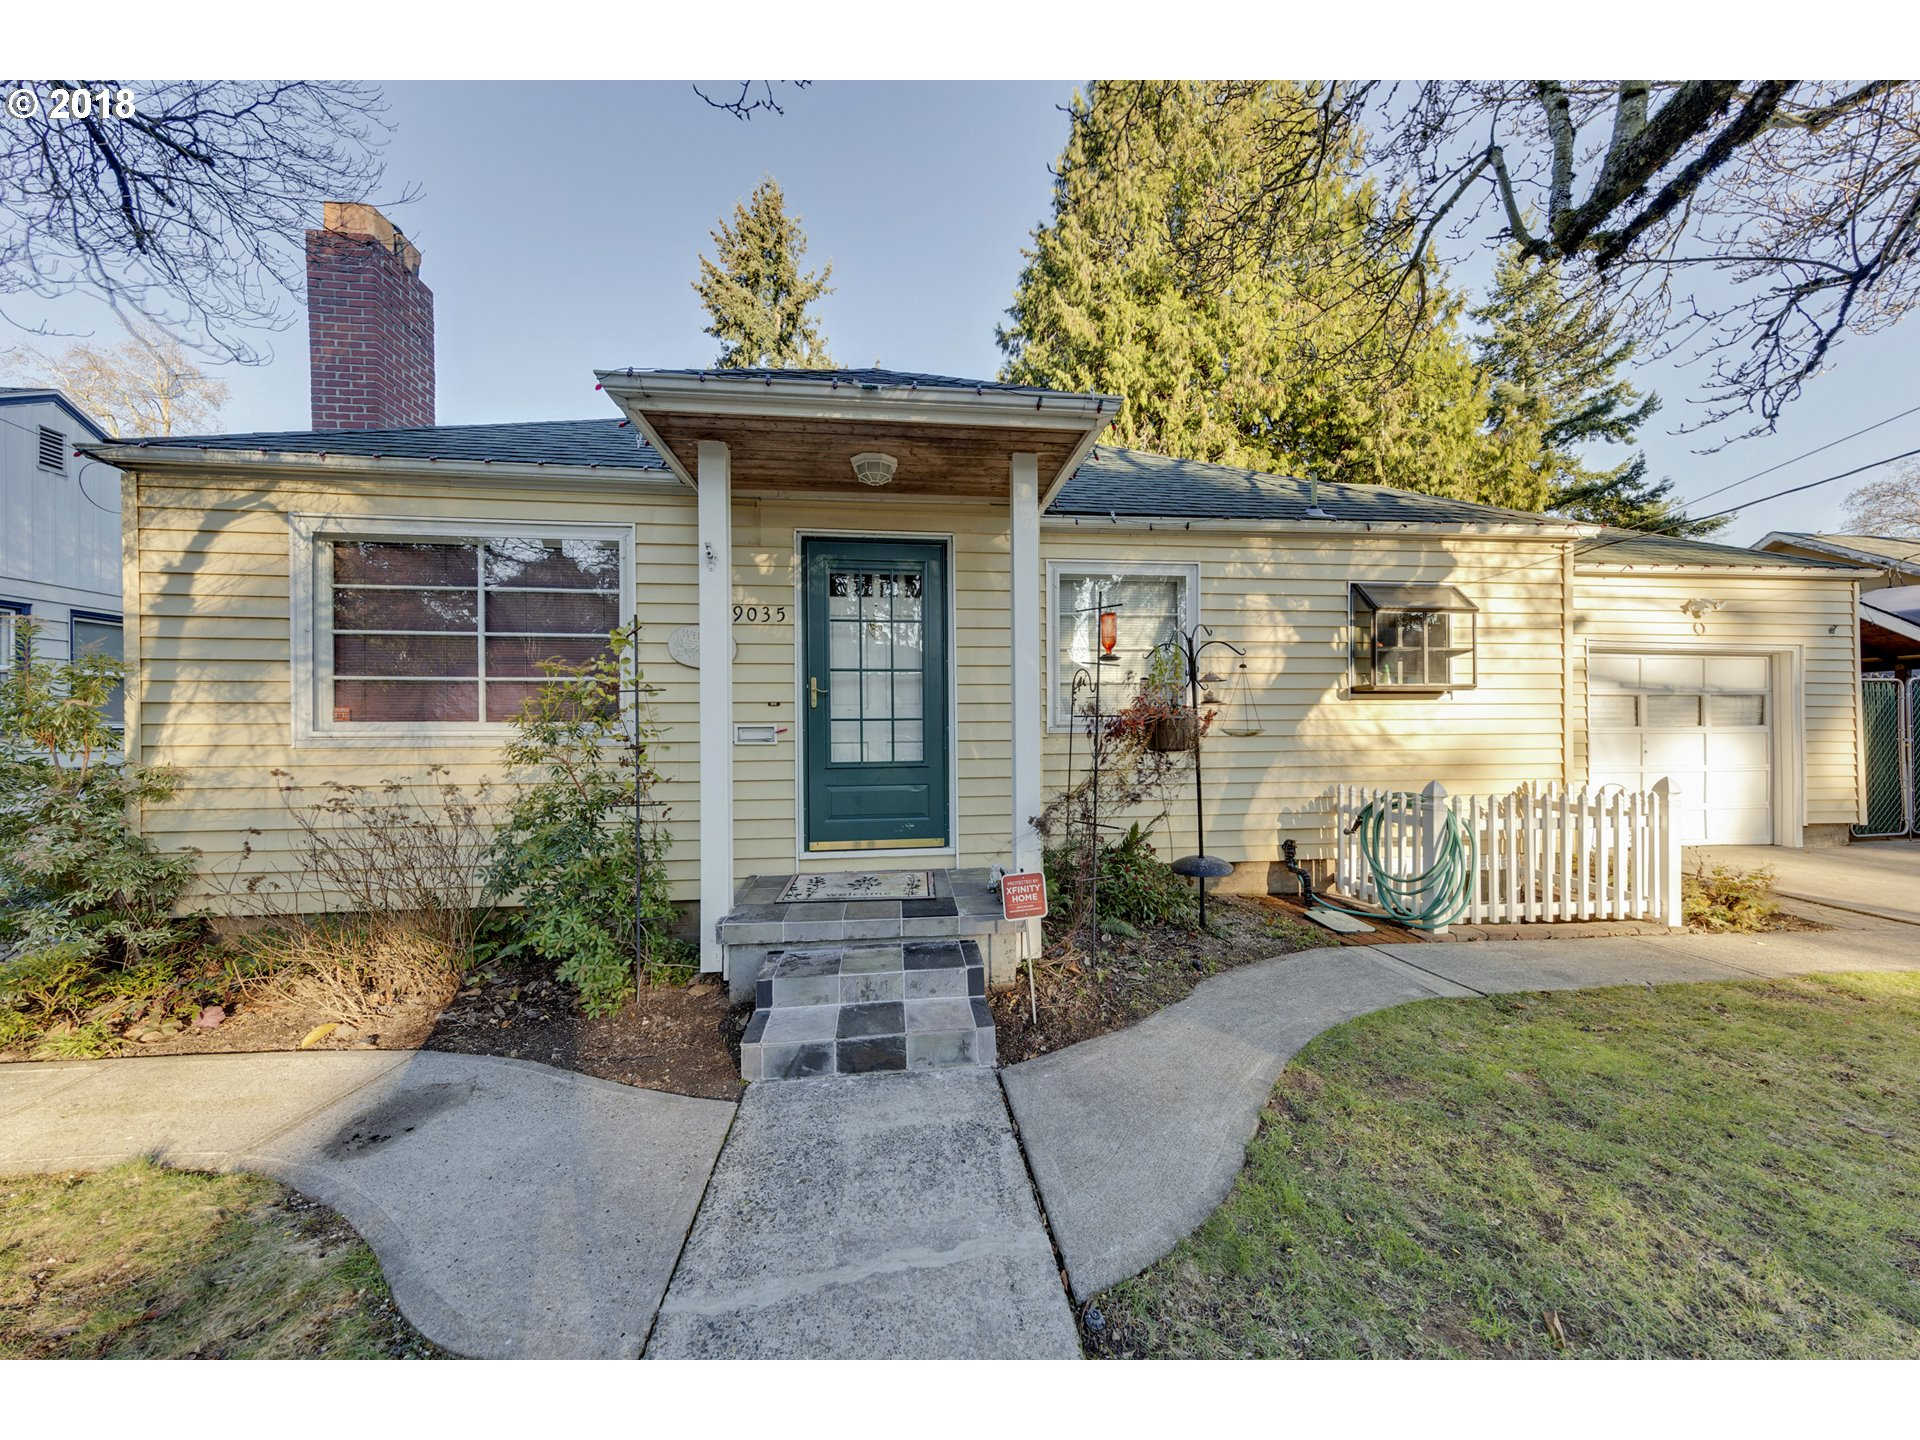 1780 sq. ft 3 bedrooms 1 bathrooms  House For Sale,Portland, OR